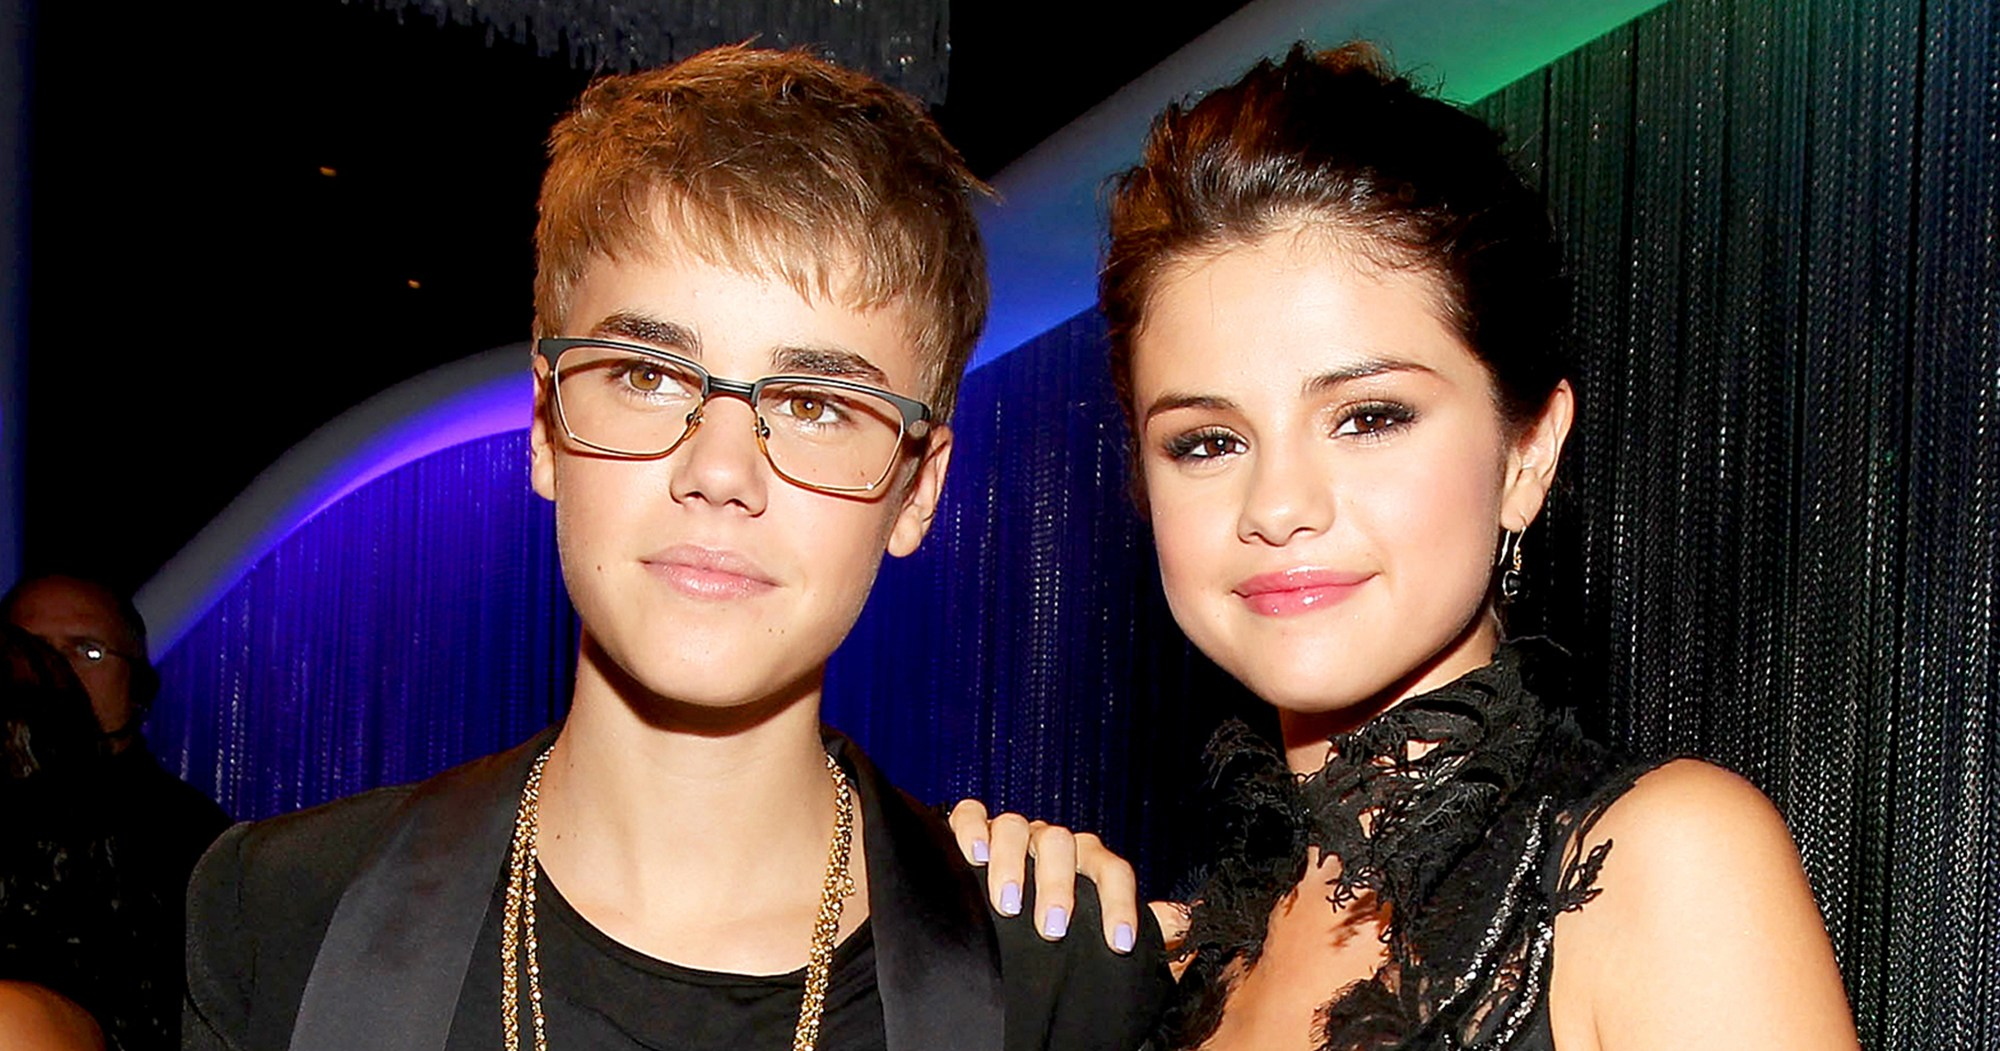 Selena Gomez Mom 'Not Happy' About Romance With Justin Bieber